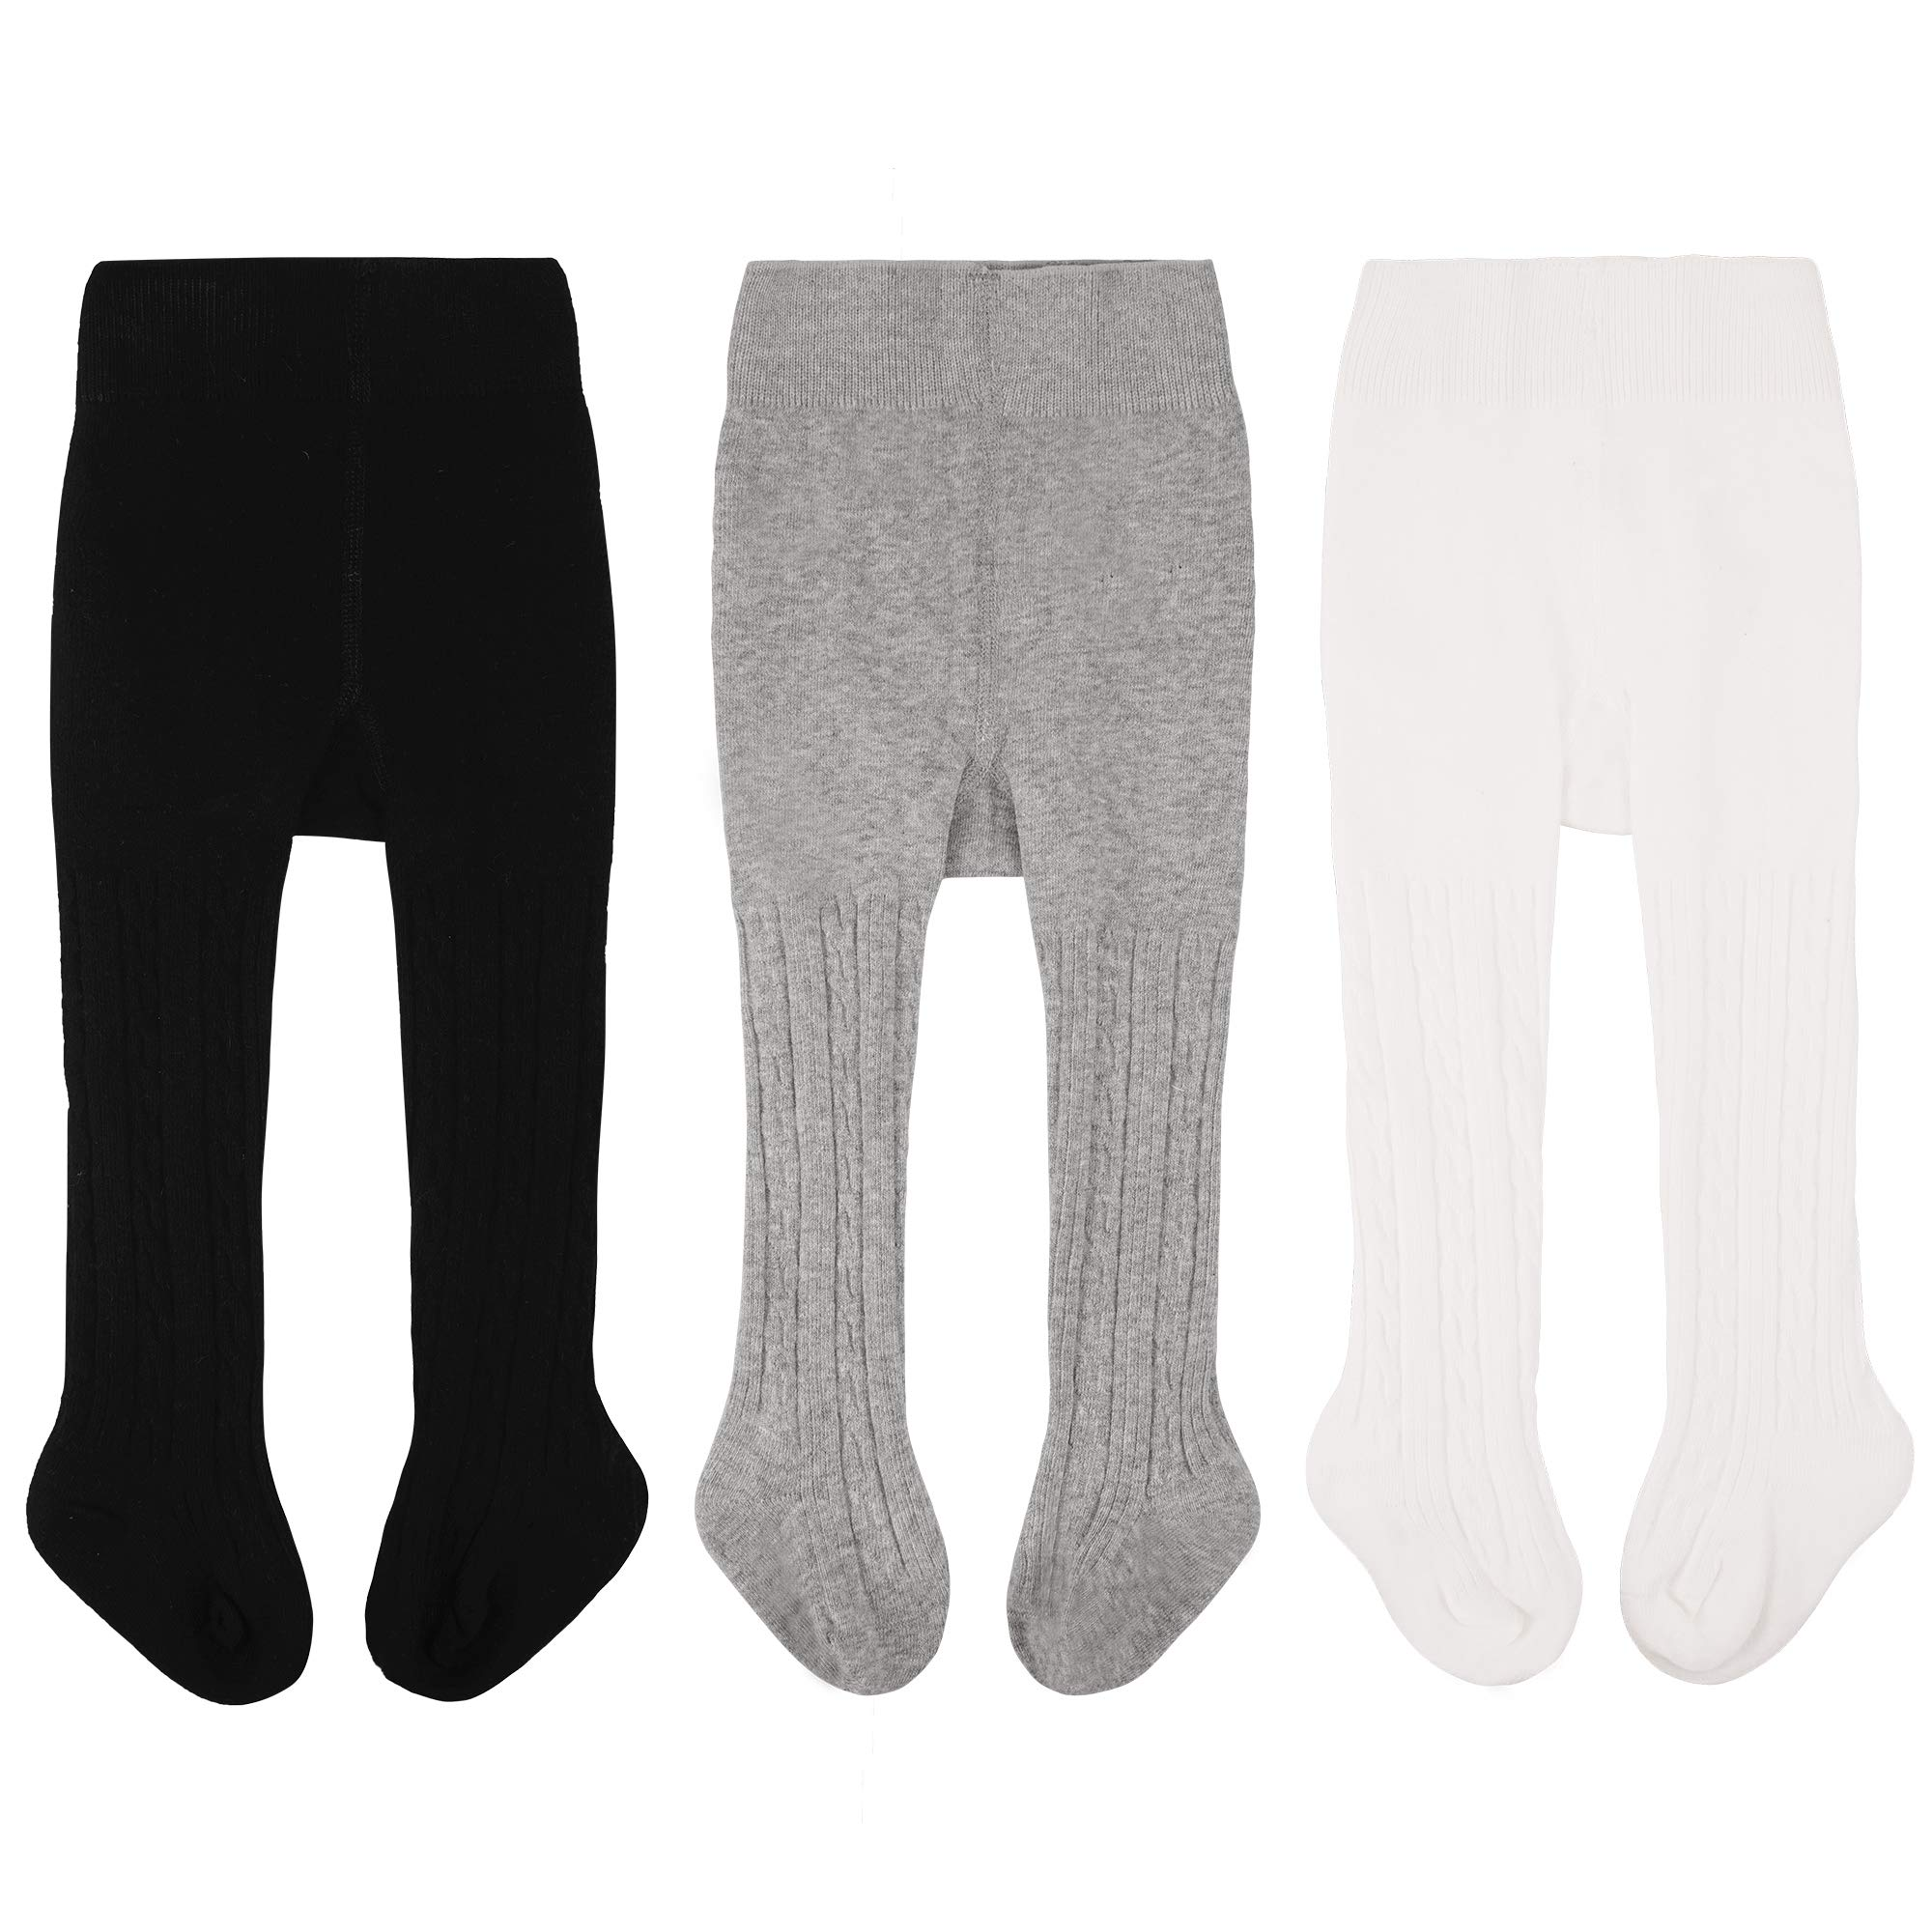 97c923b88 CozyWay Baby Girls Tights Cable Knit Leggings Stockings Cotton 3/5 Pack  Pantyhose Infants Toddlers